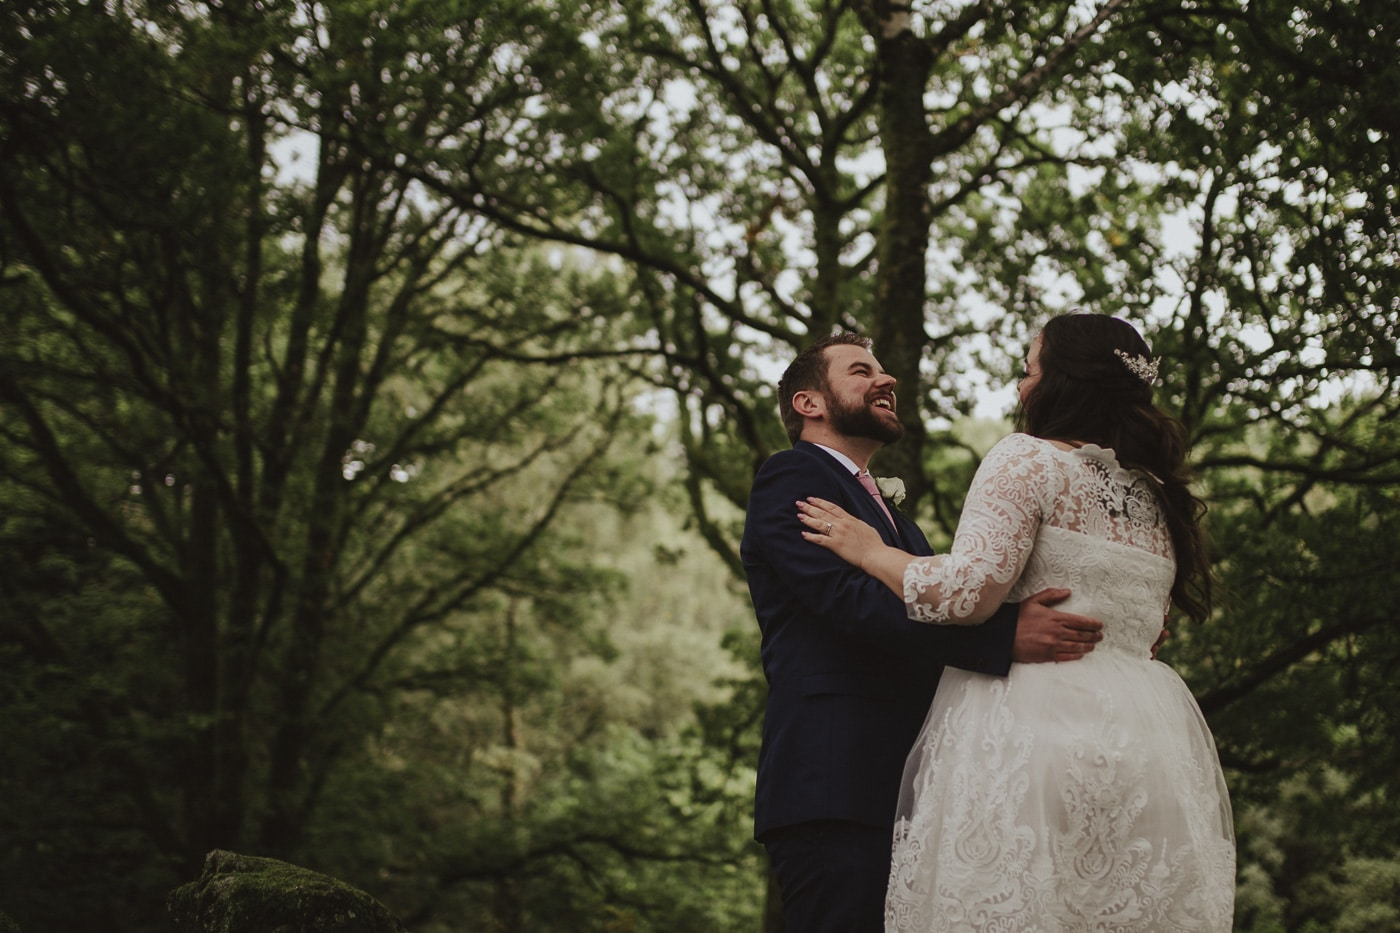 Bride and groom laughing surrounded by trees in cumbria